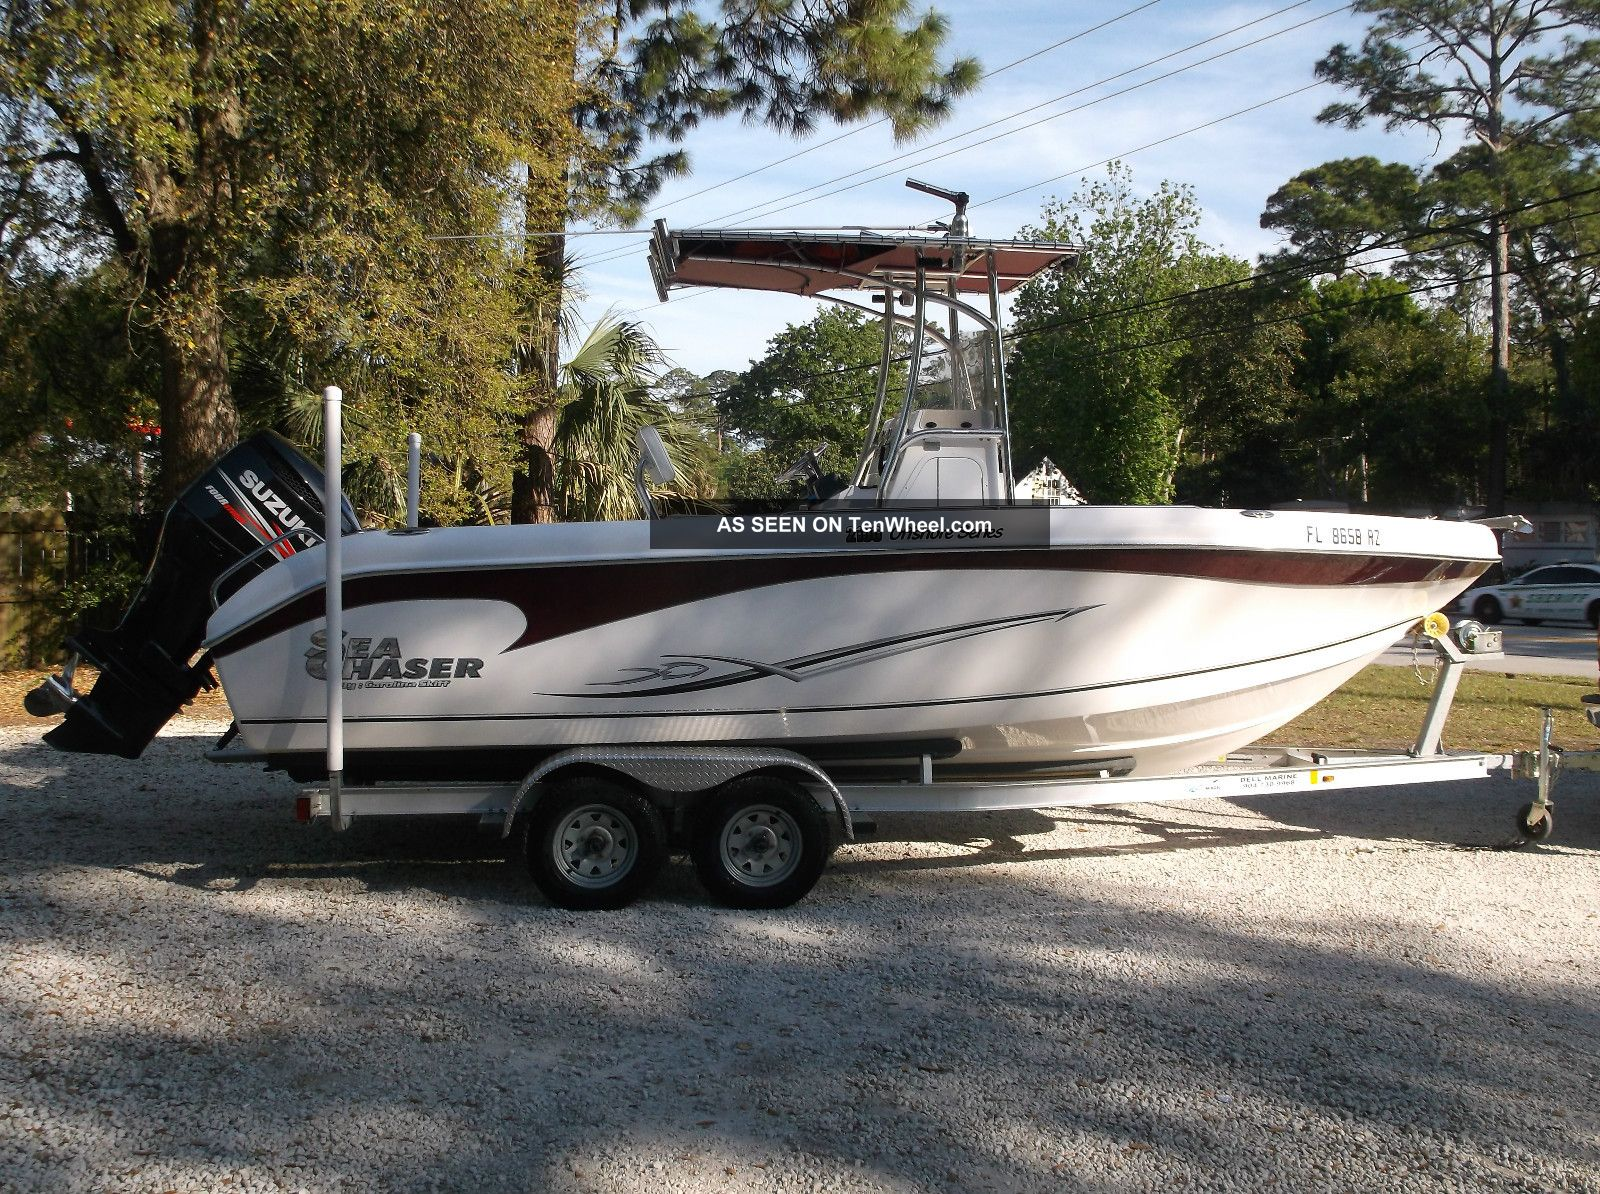 2012 Sea Chaser Offshore Series By Carolina Skiff 21 Off Shore Series Offshore Saltwater Fishing photo